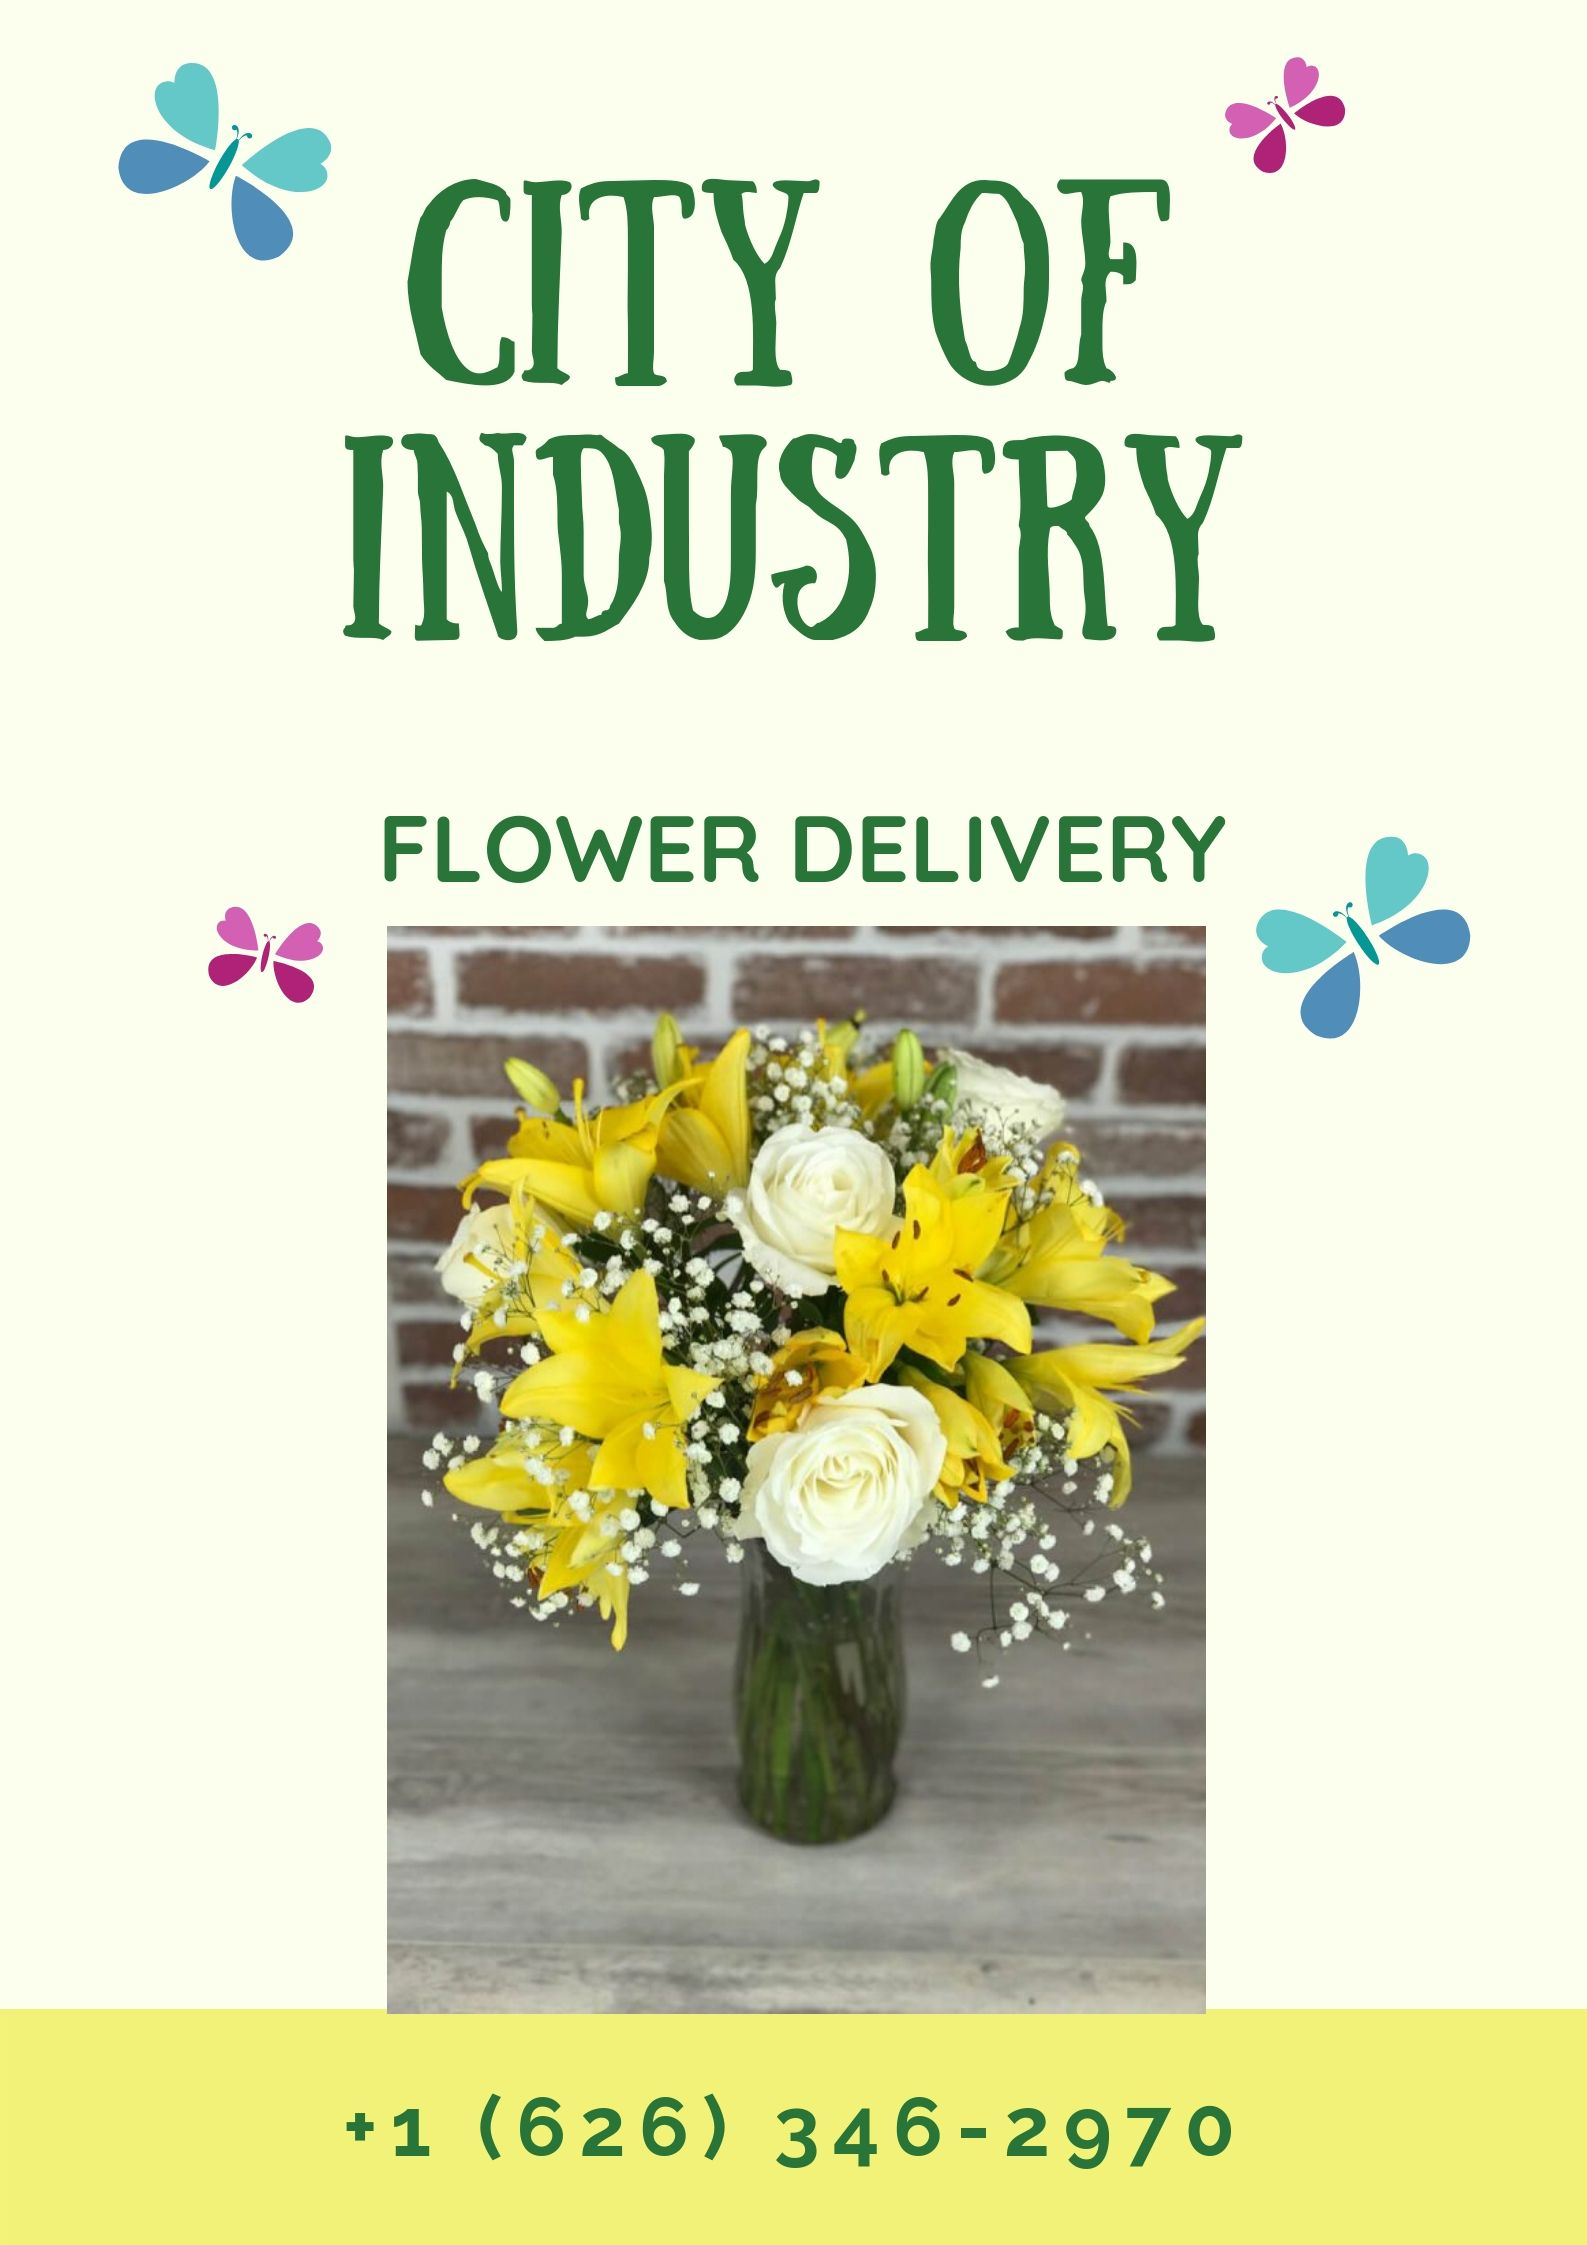 Use flower bouquet to congratulate get well or birthday wishes to